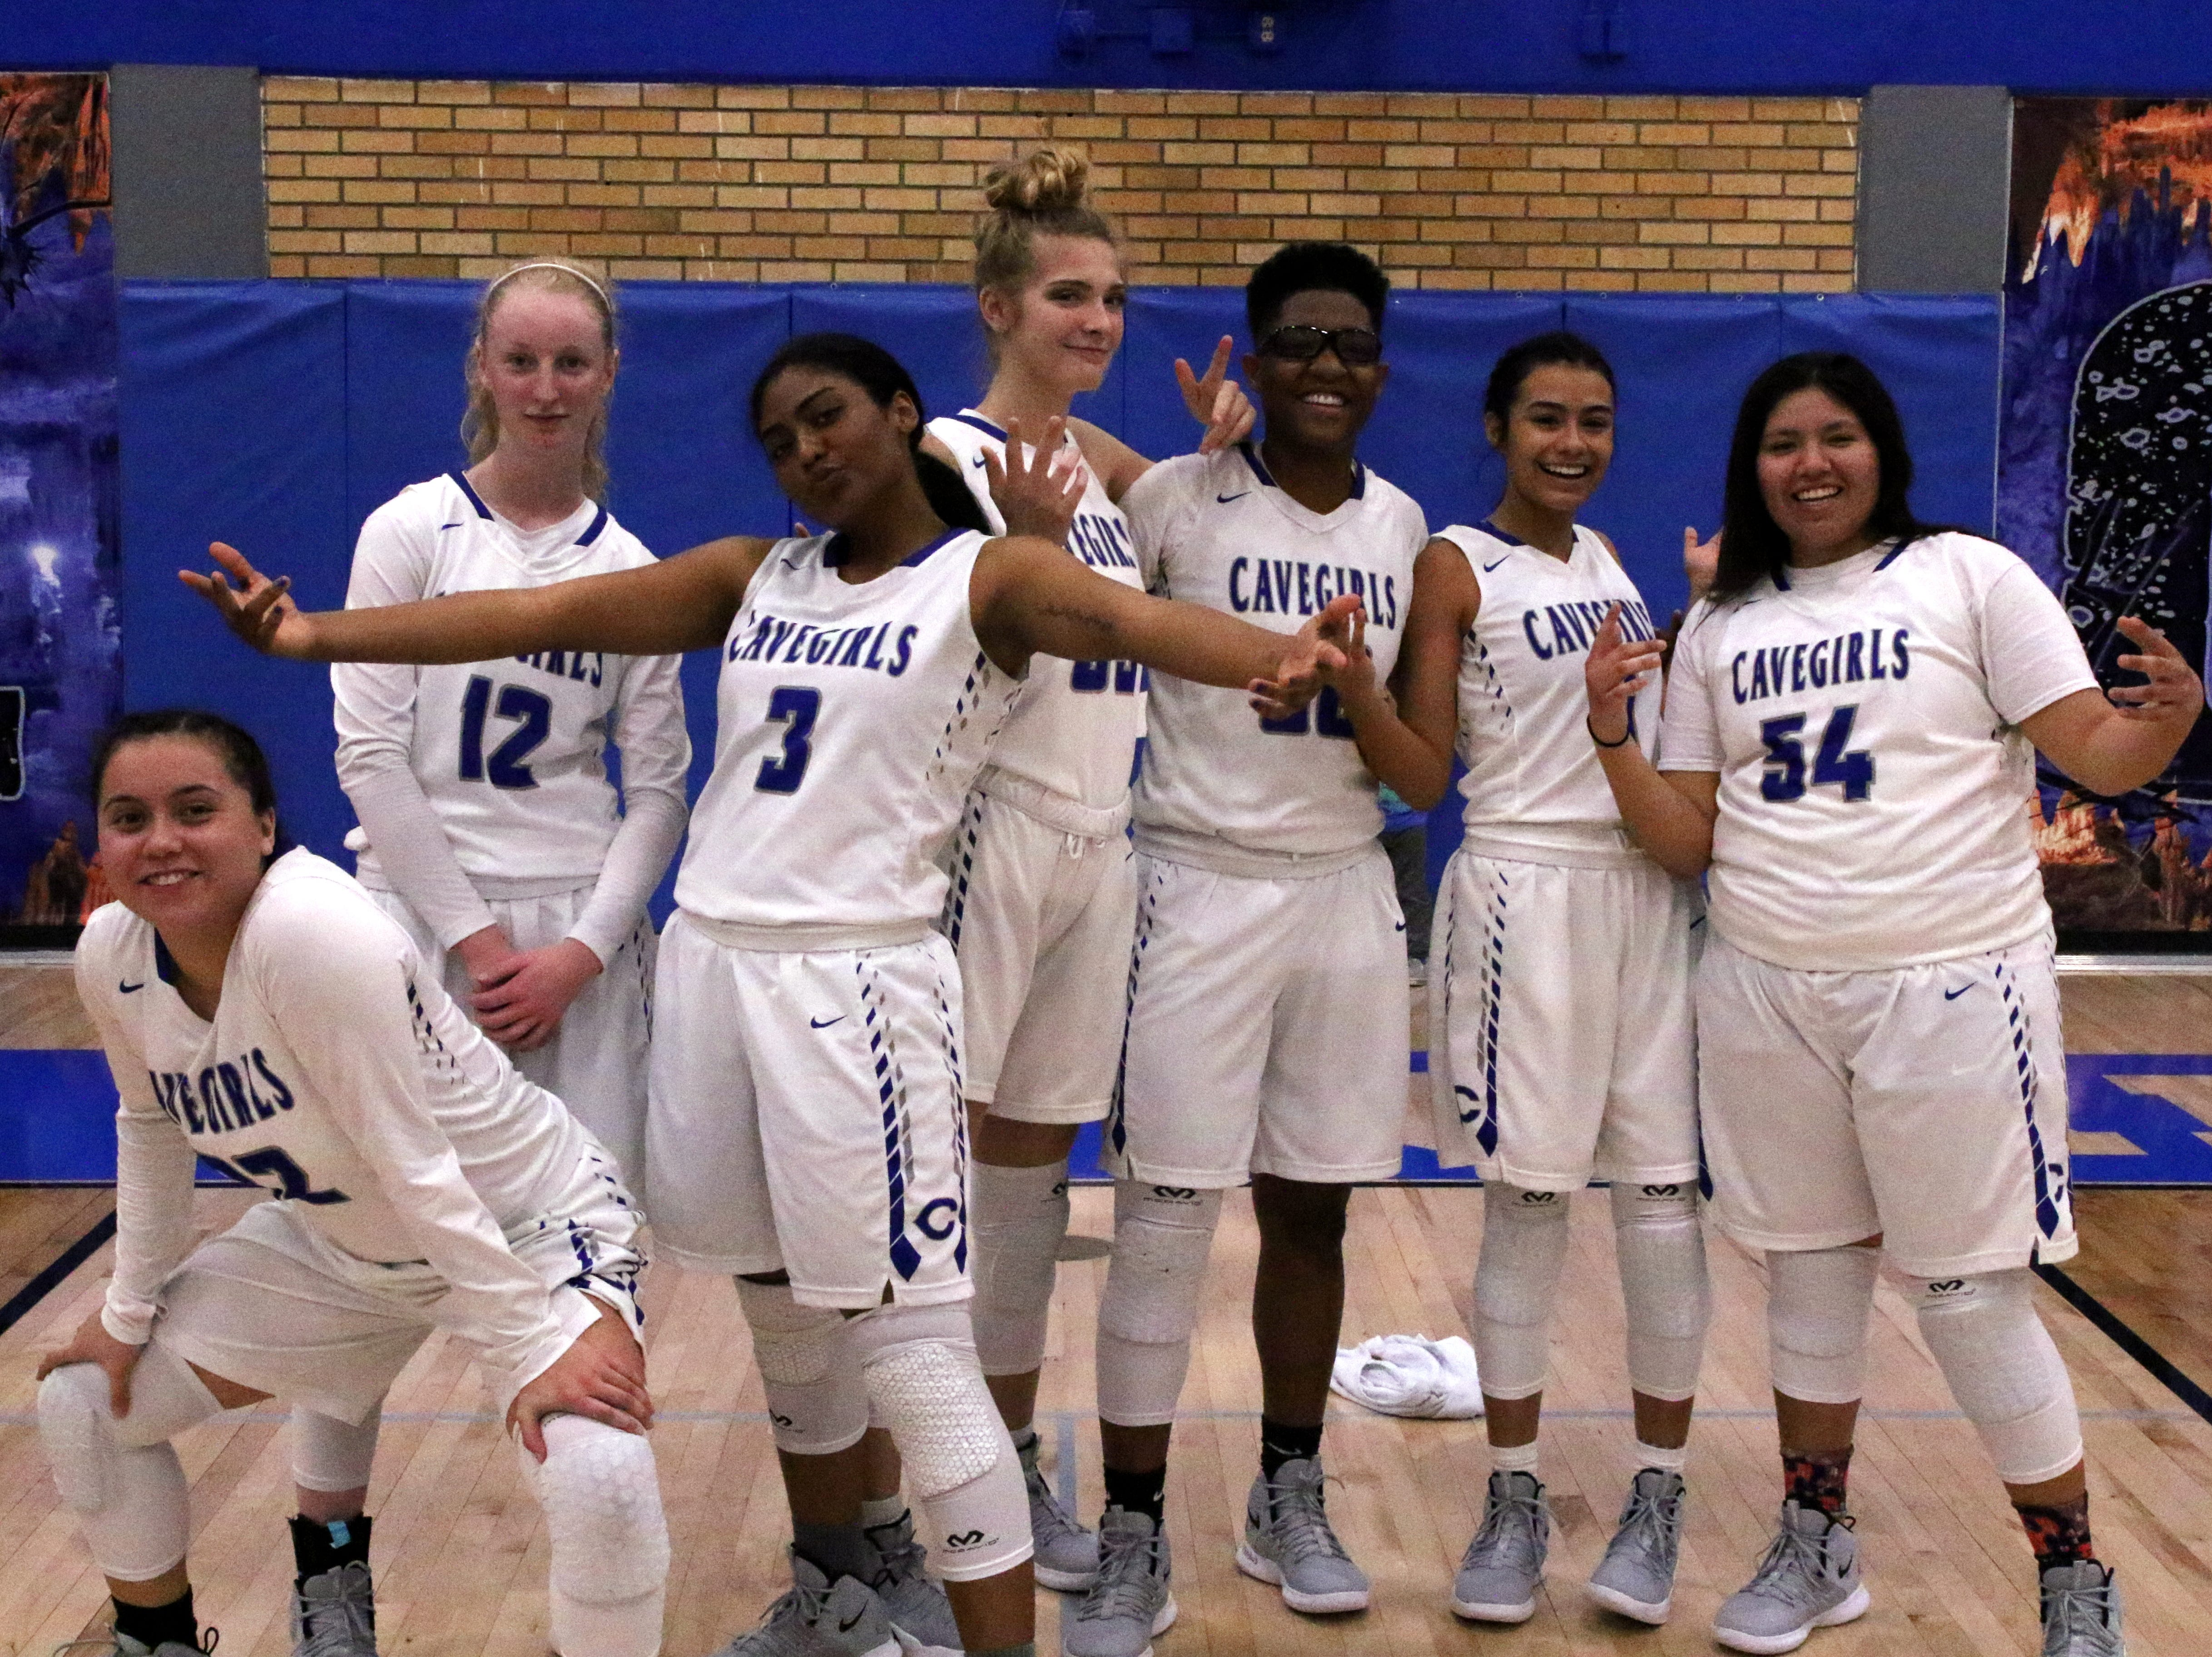 The Cavegirl seniors pose after Friday's game.